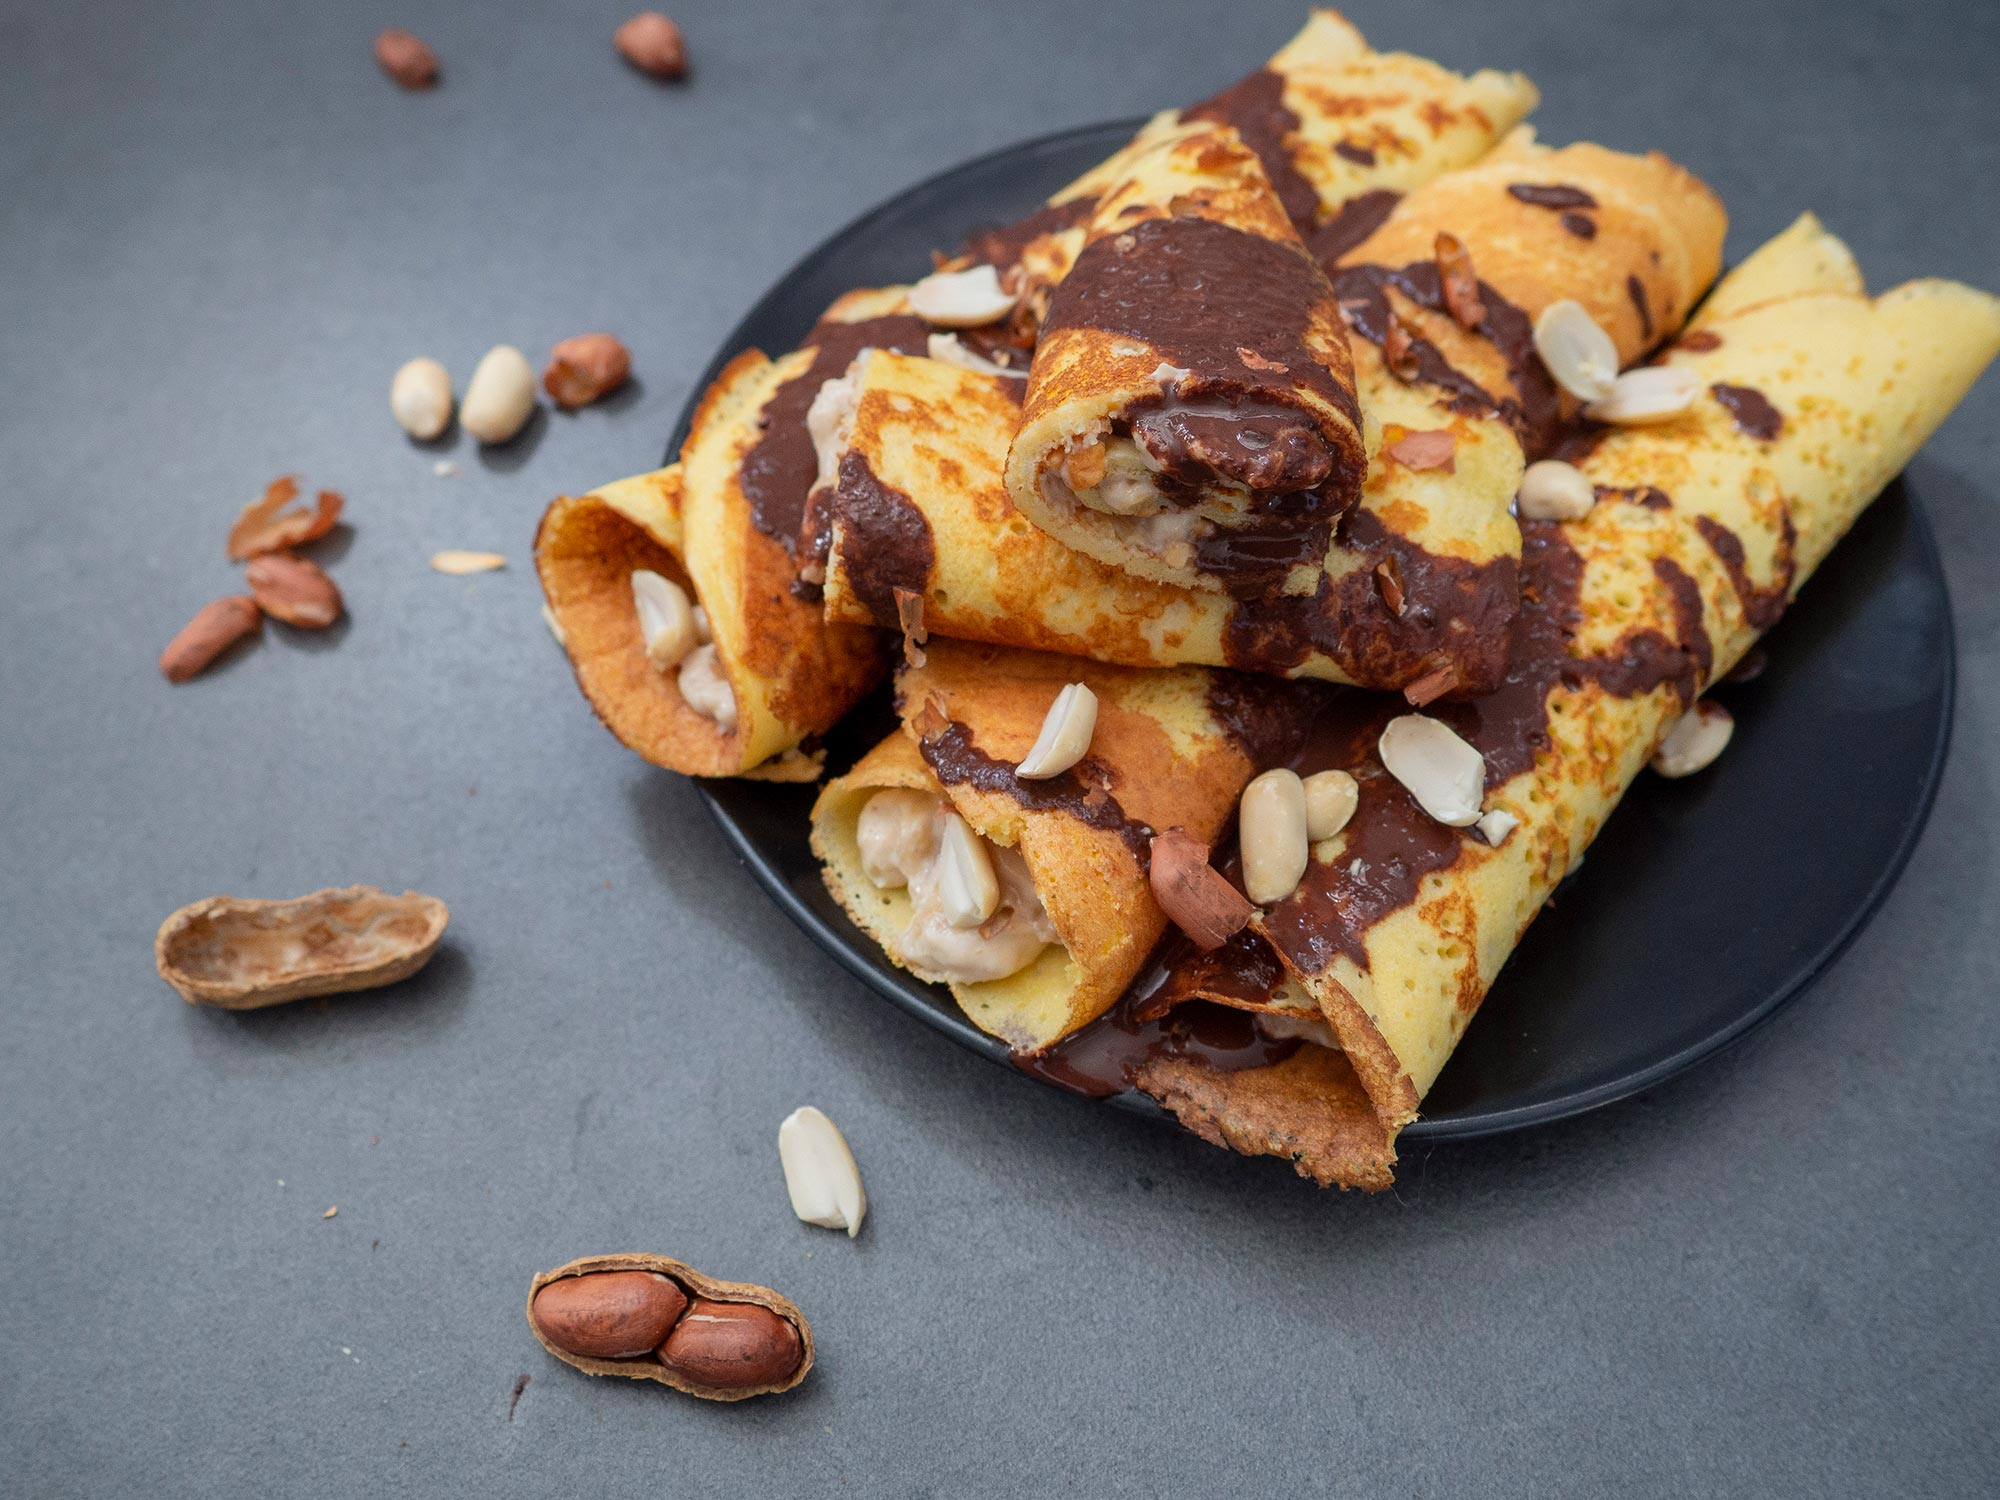 Snickers Pancakes ready to eat